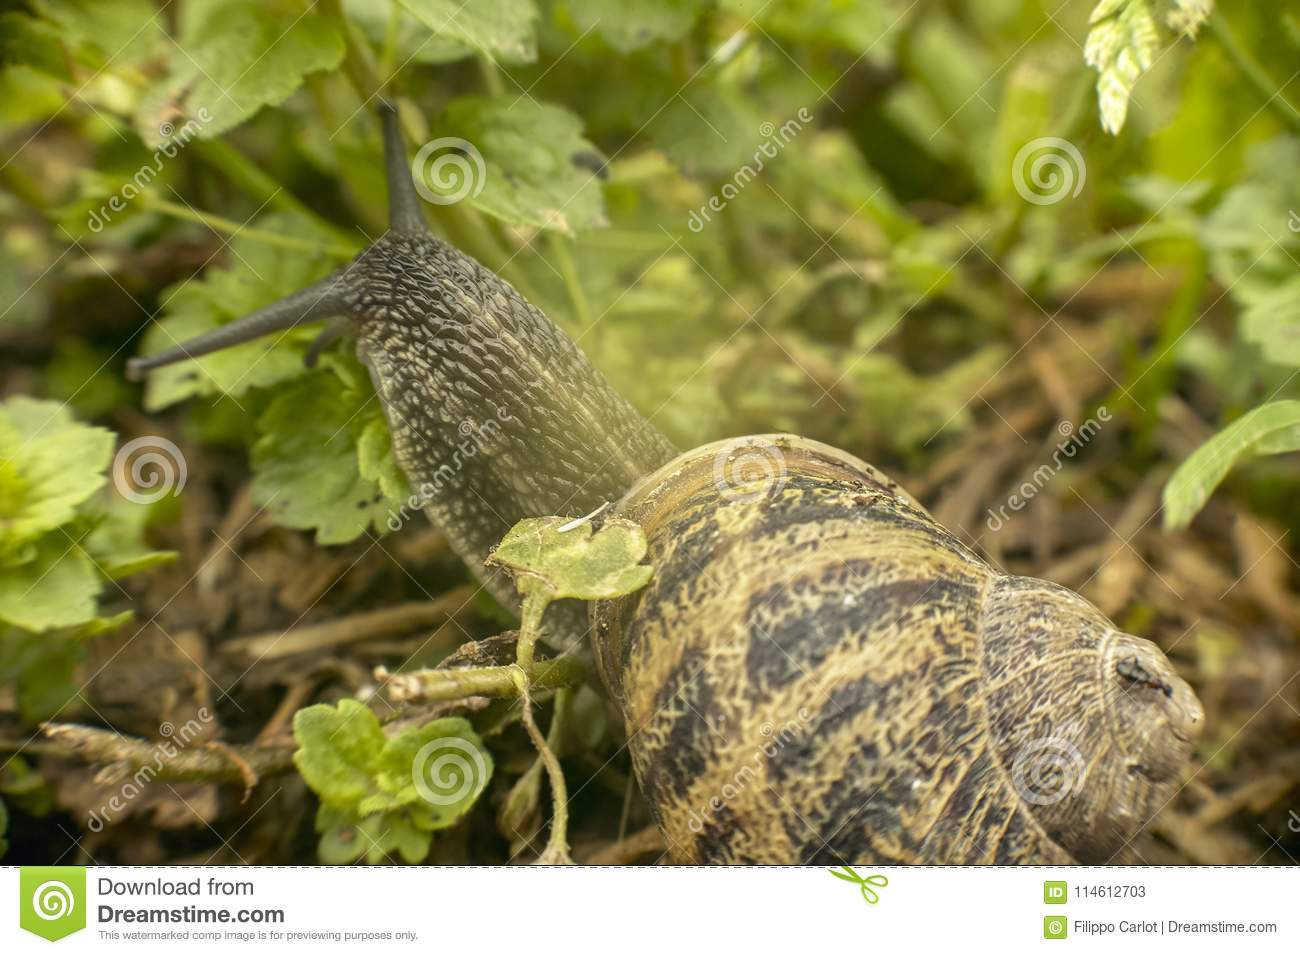 Small Snail In The Vegetation In Search Of Food Stock ...